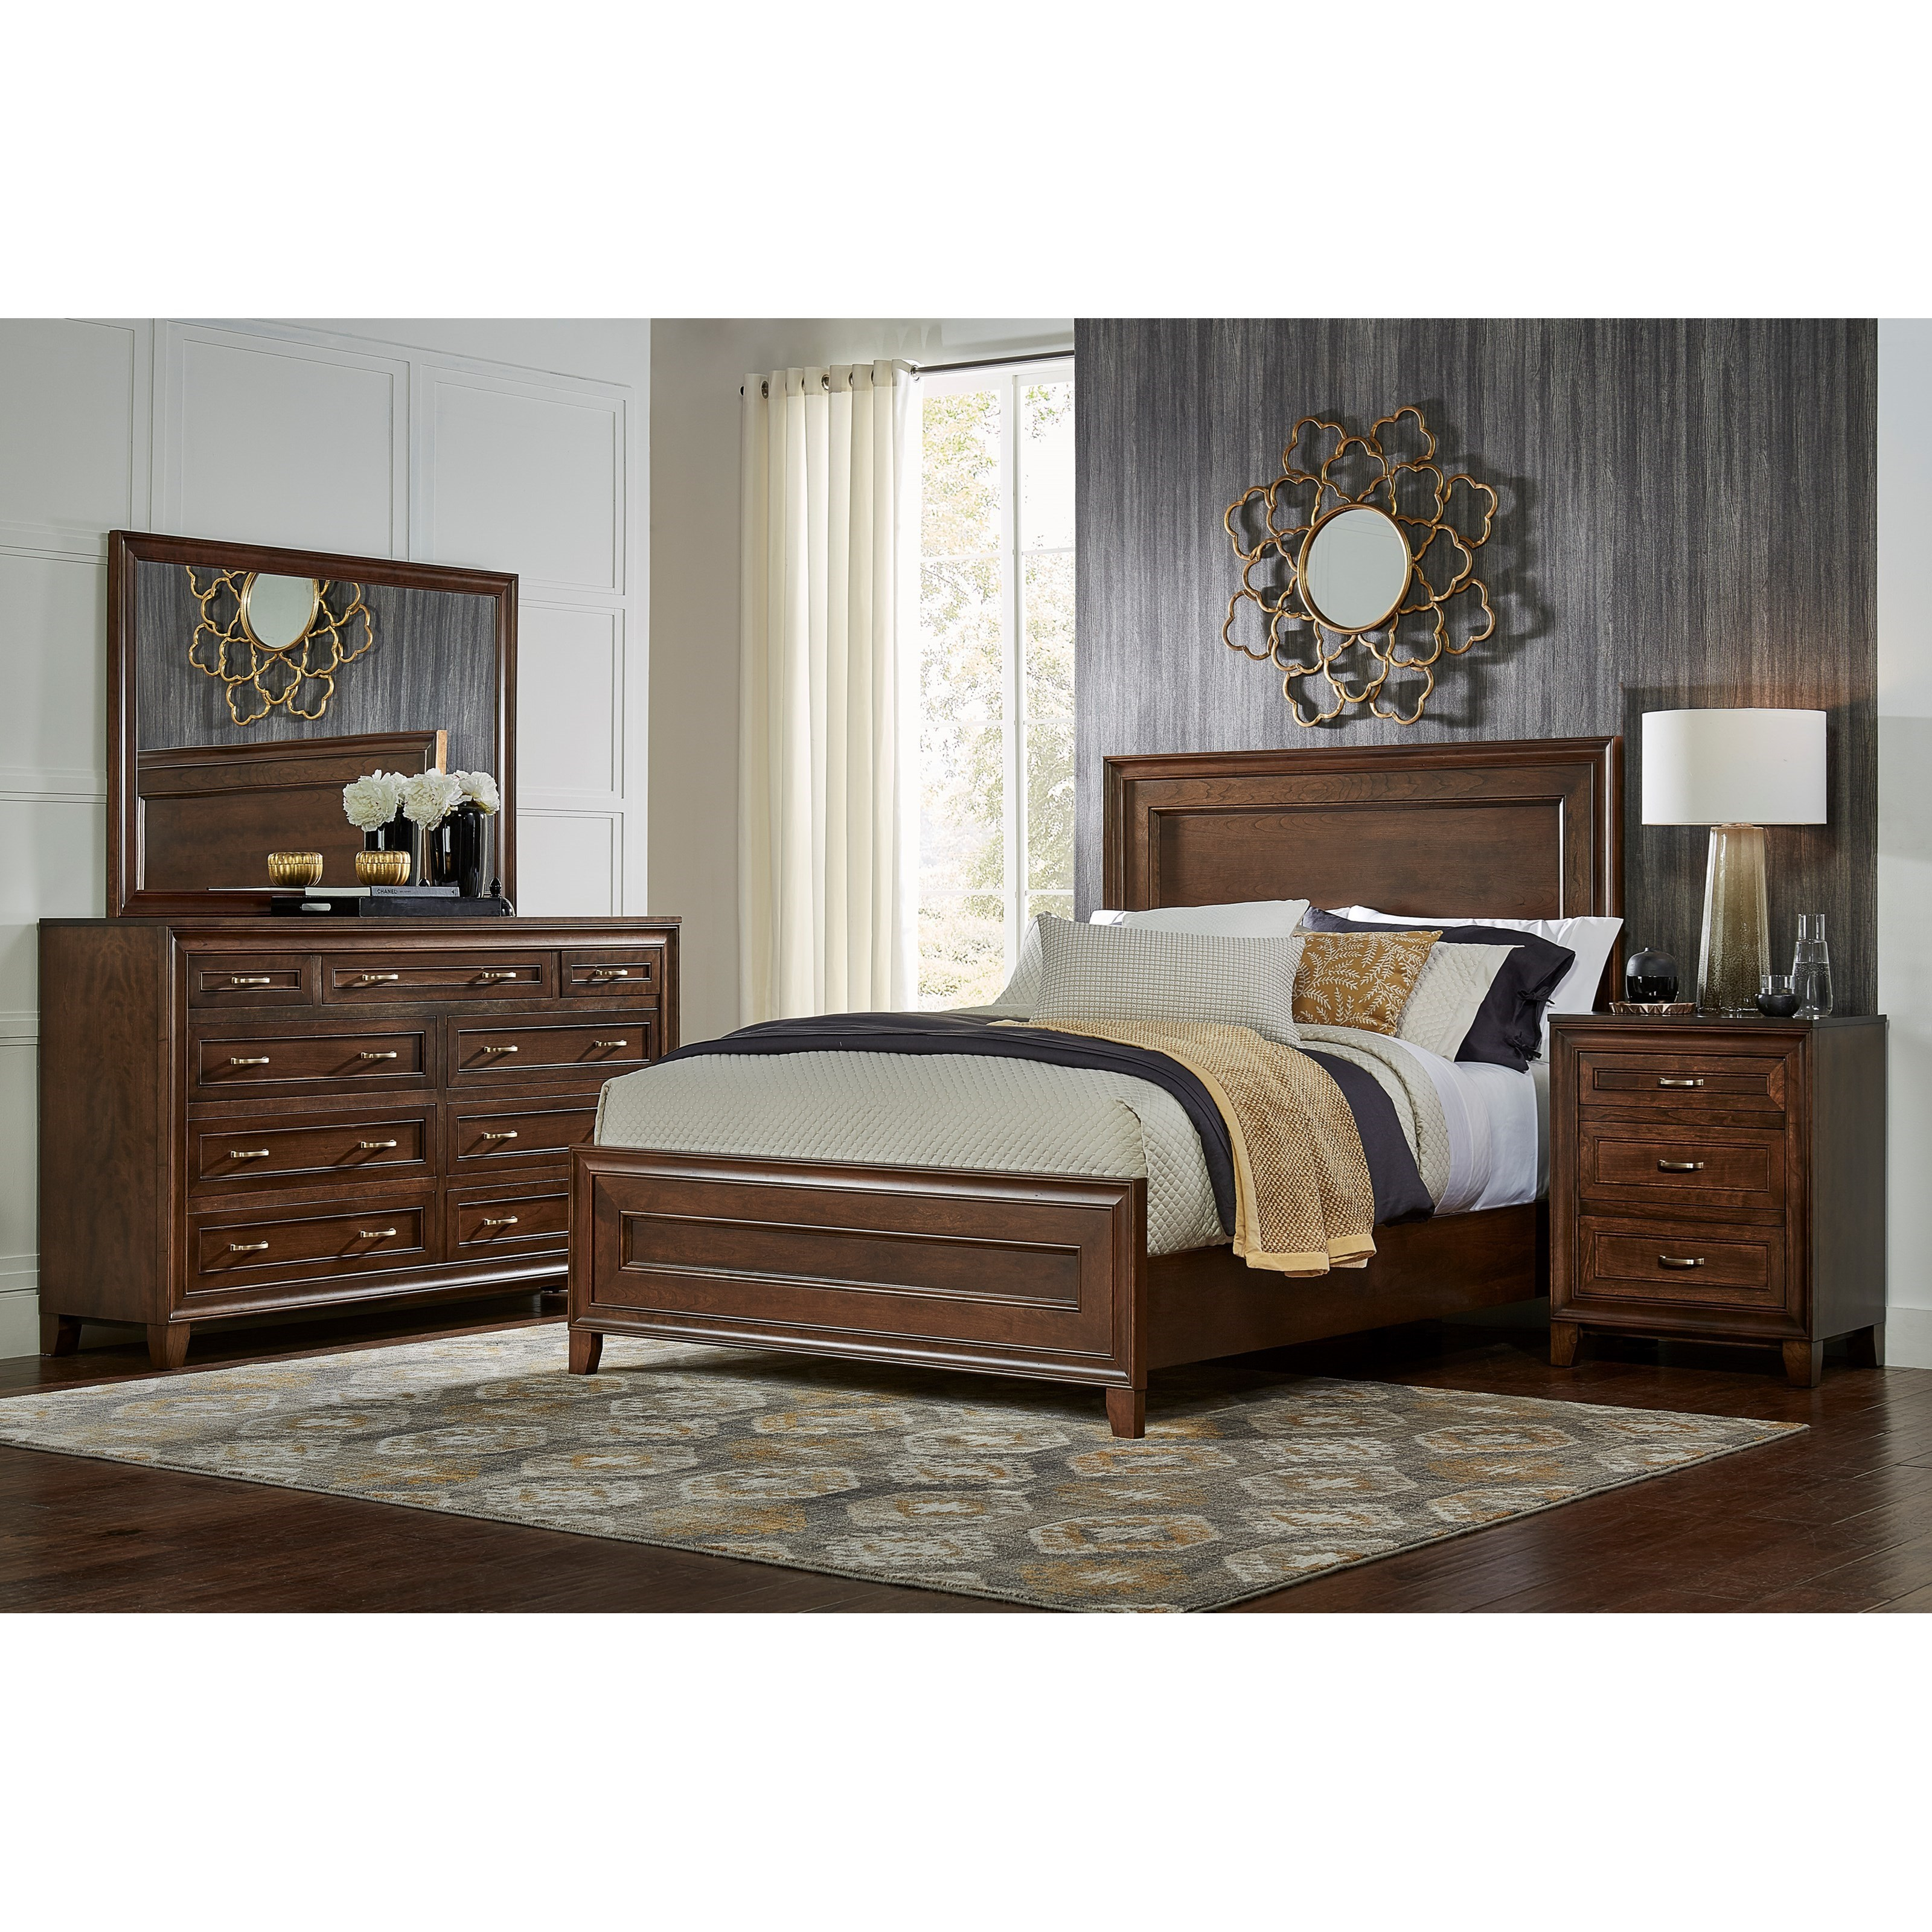 Summerville California King Bedroom Group by Daniel's Amish at Westrich Furniture & Appliances